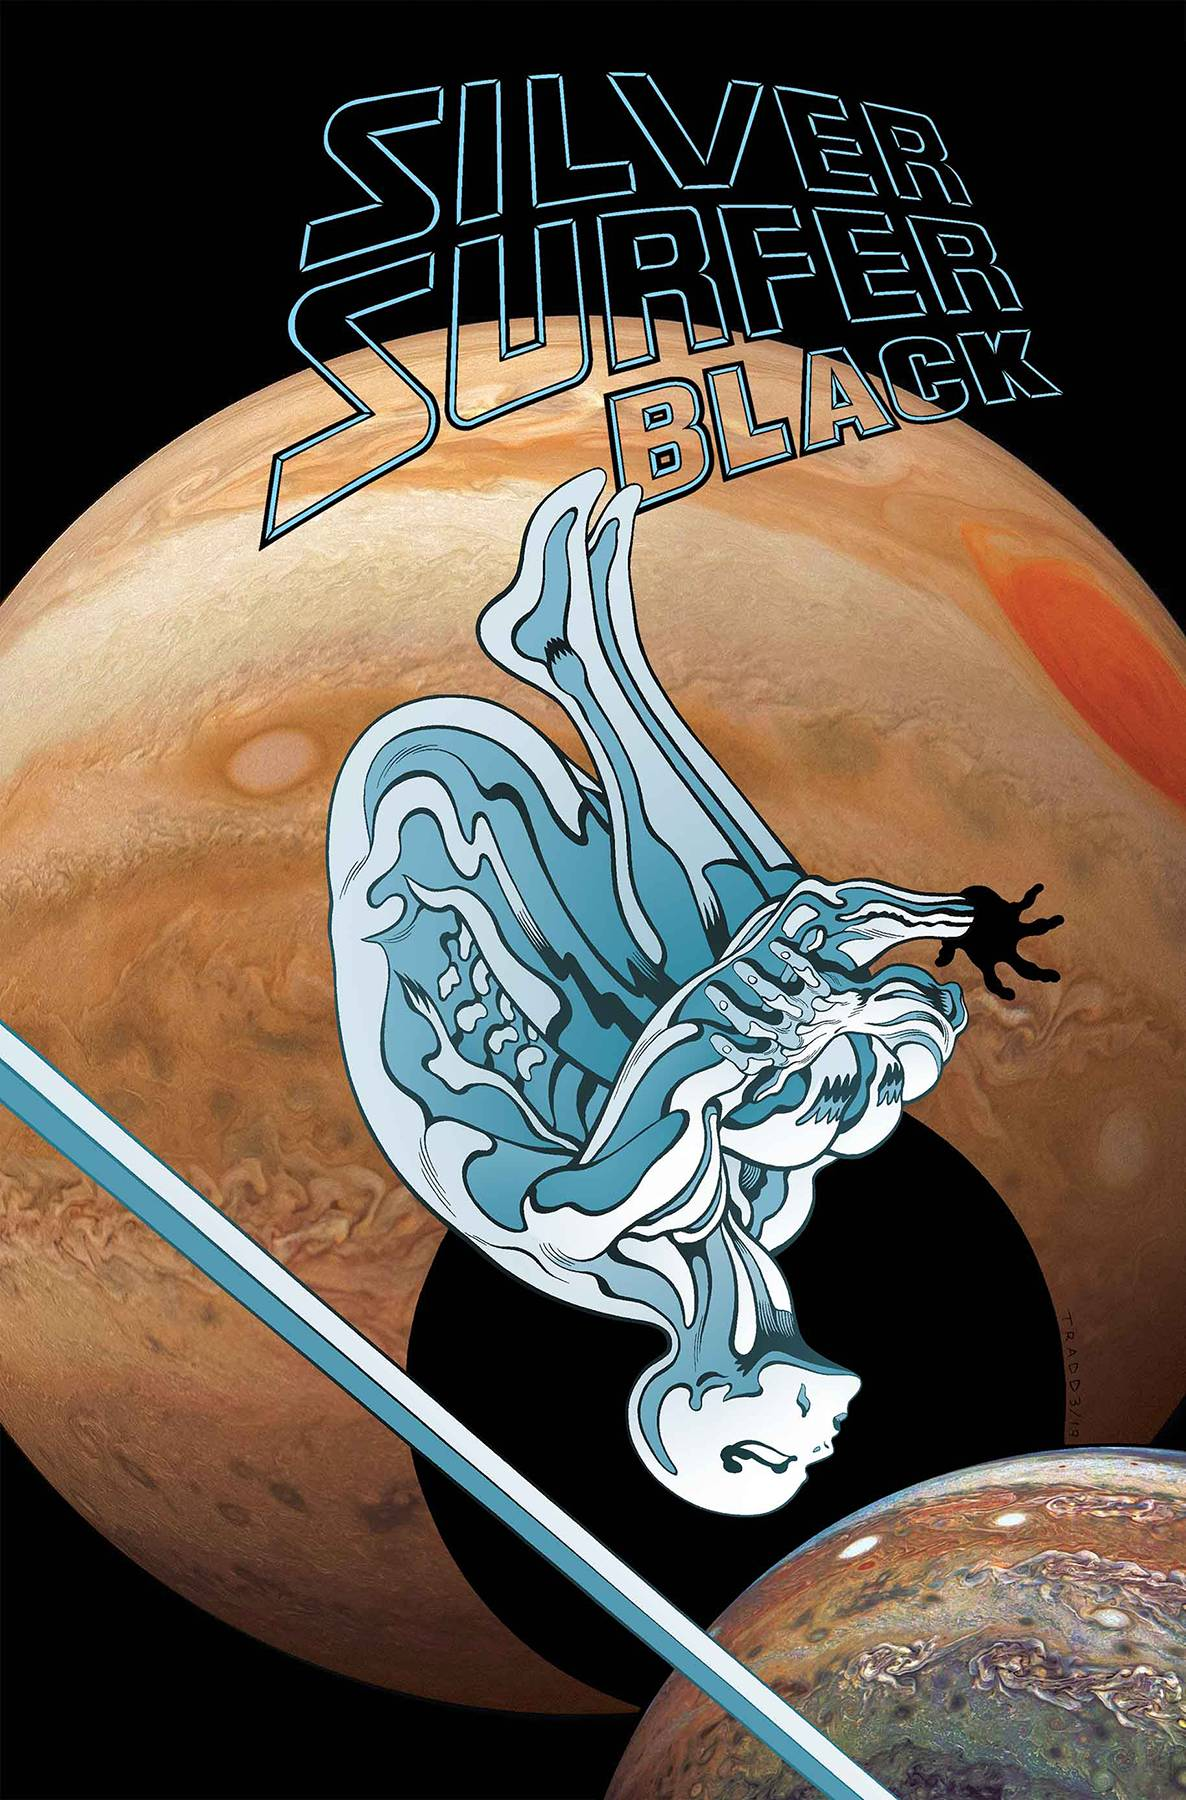 Silver Surfer Black #2 (of 5) Pre-Order